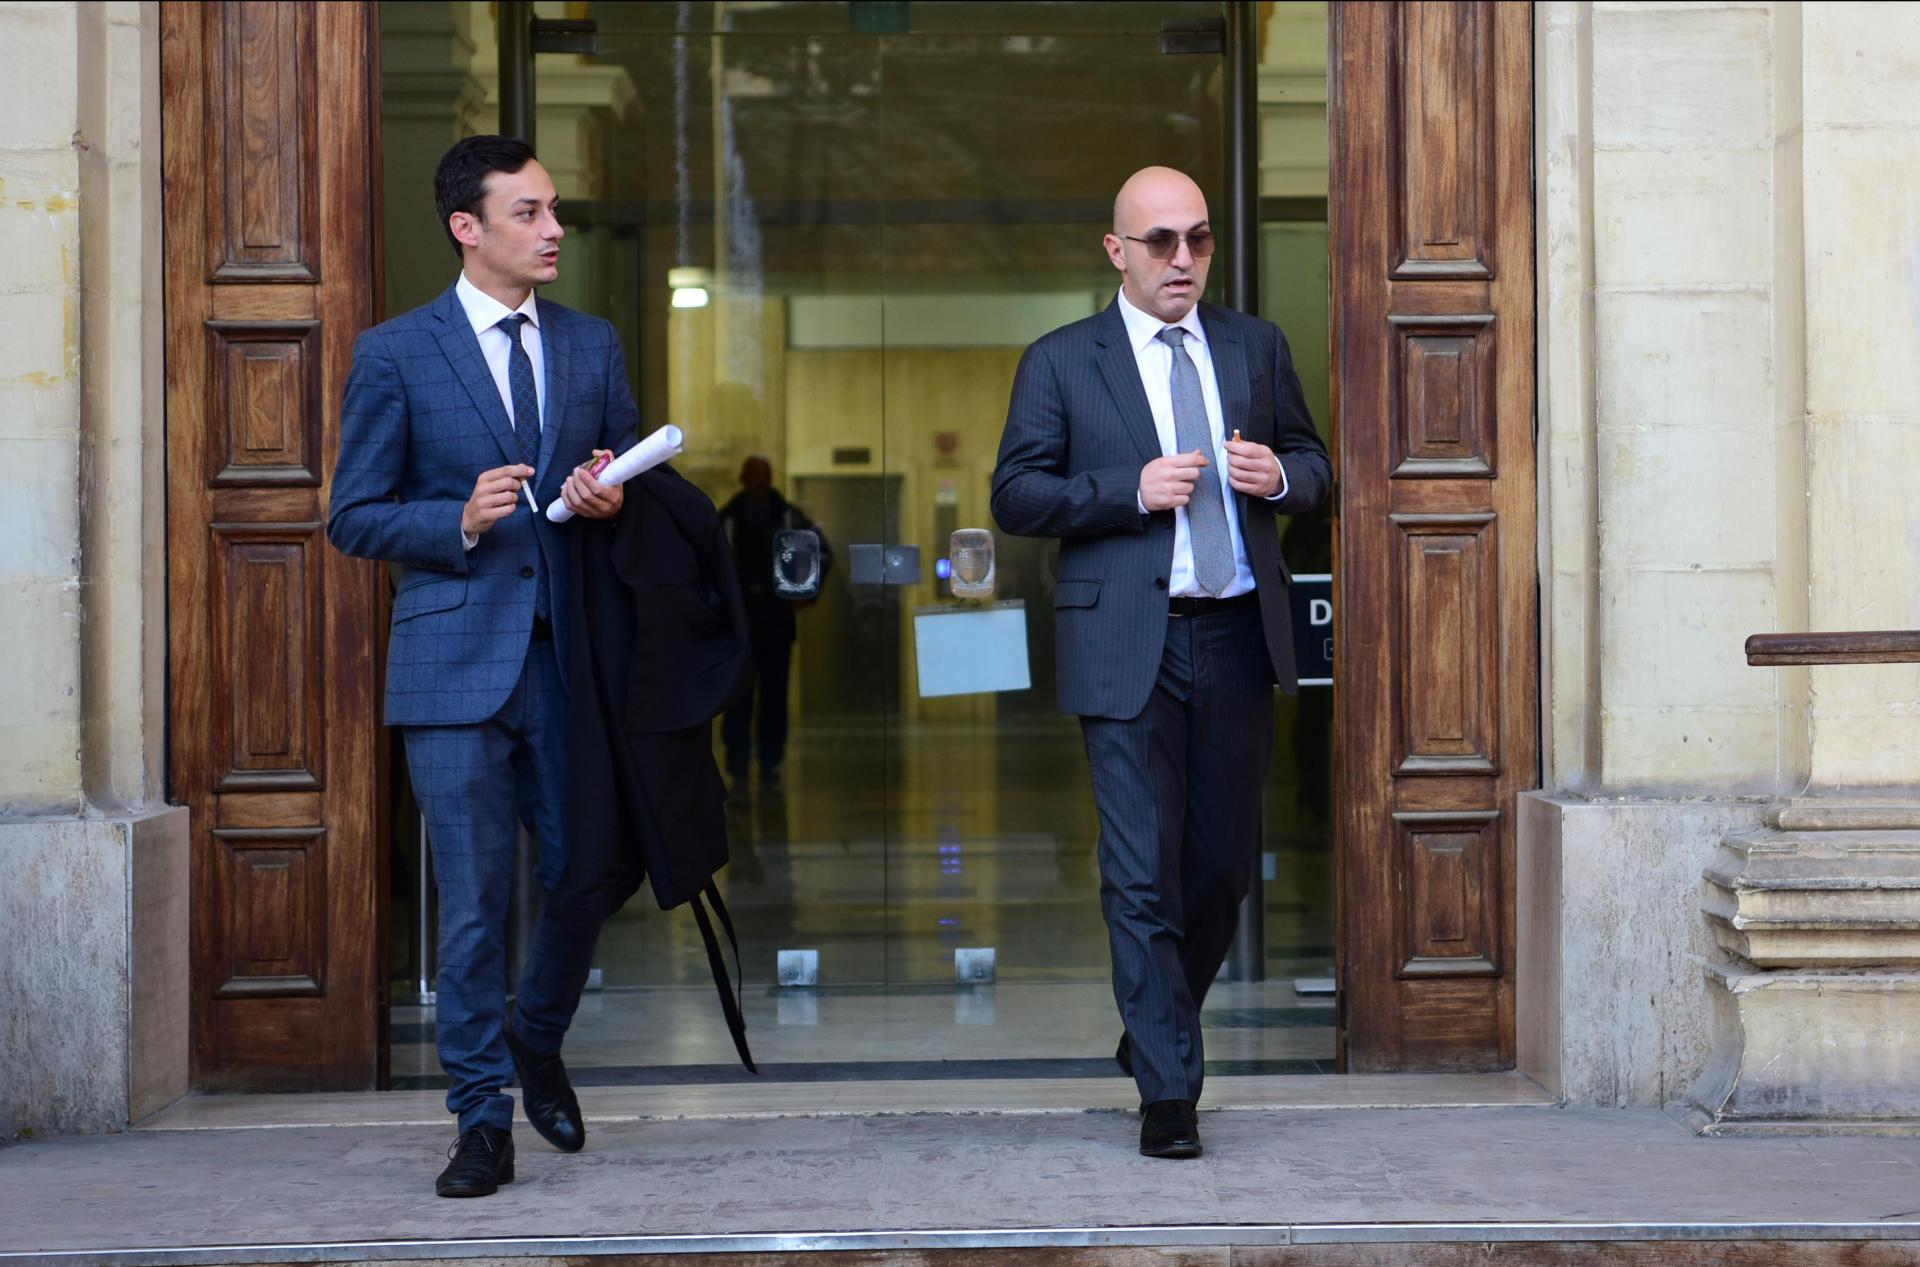 Gianluca Caruana Curran and suspect Yorgen Fenech outside court last November. Photo: Mark Zammit Cordina